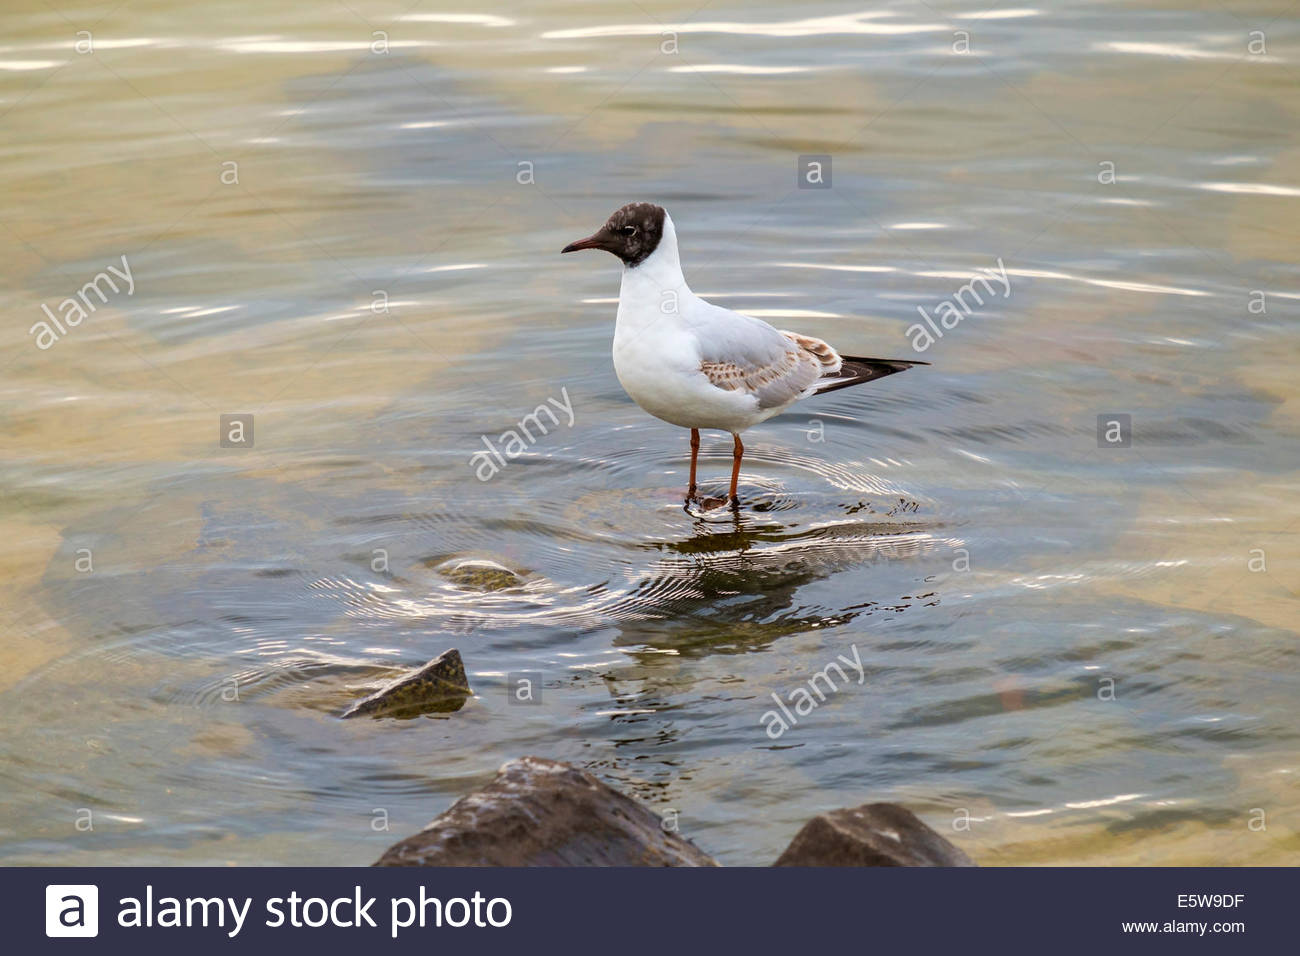 Black-headed Gull (Chroicocephalus ridibundus) with first summer juvenille plumage standing in water, Marken, North - Stock Image